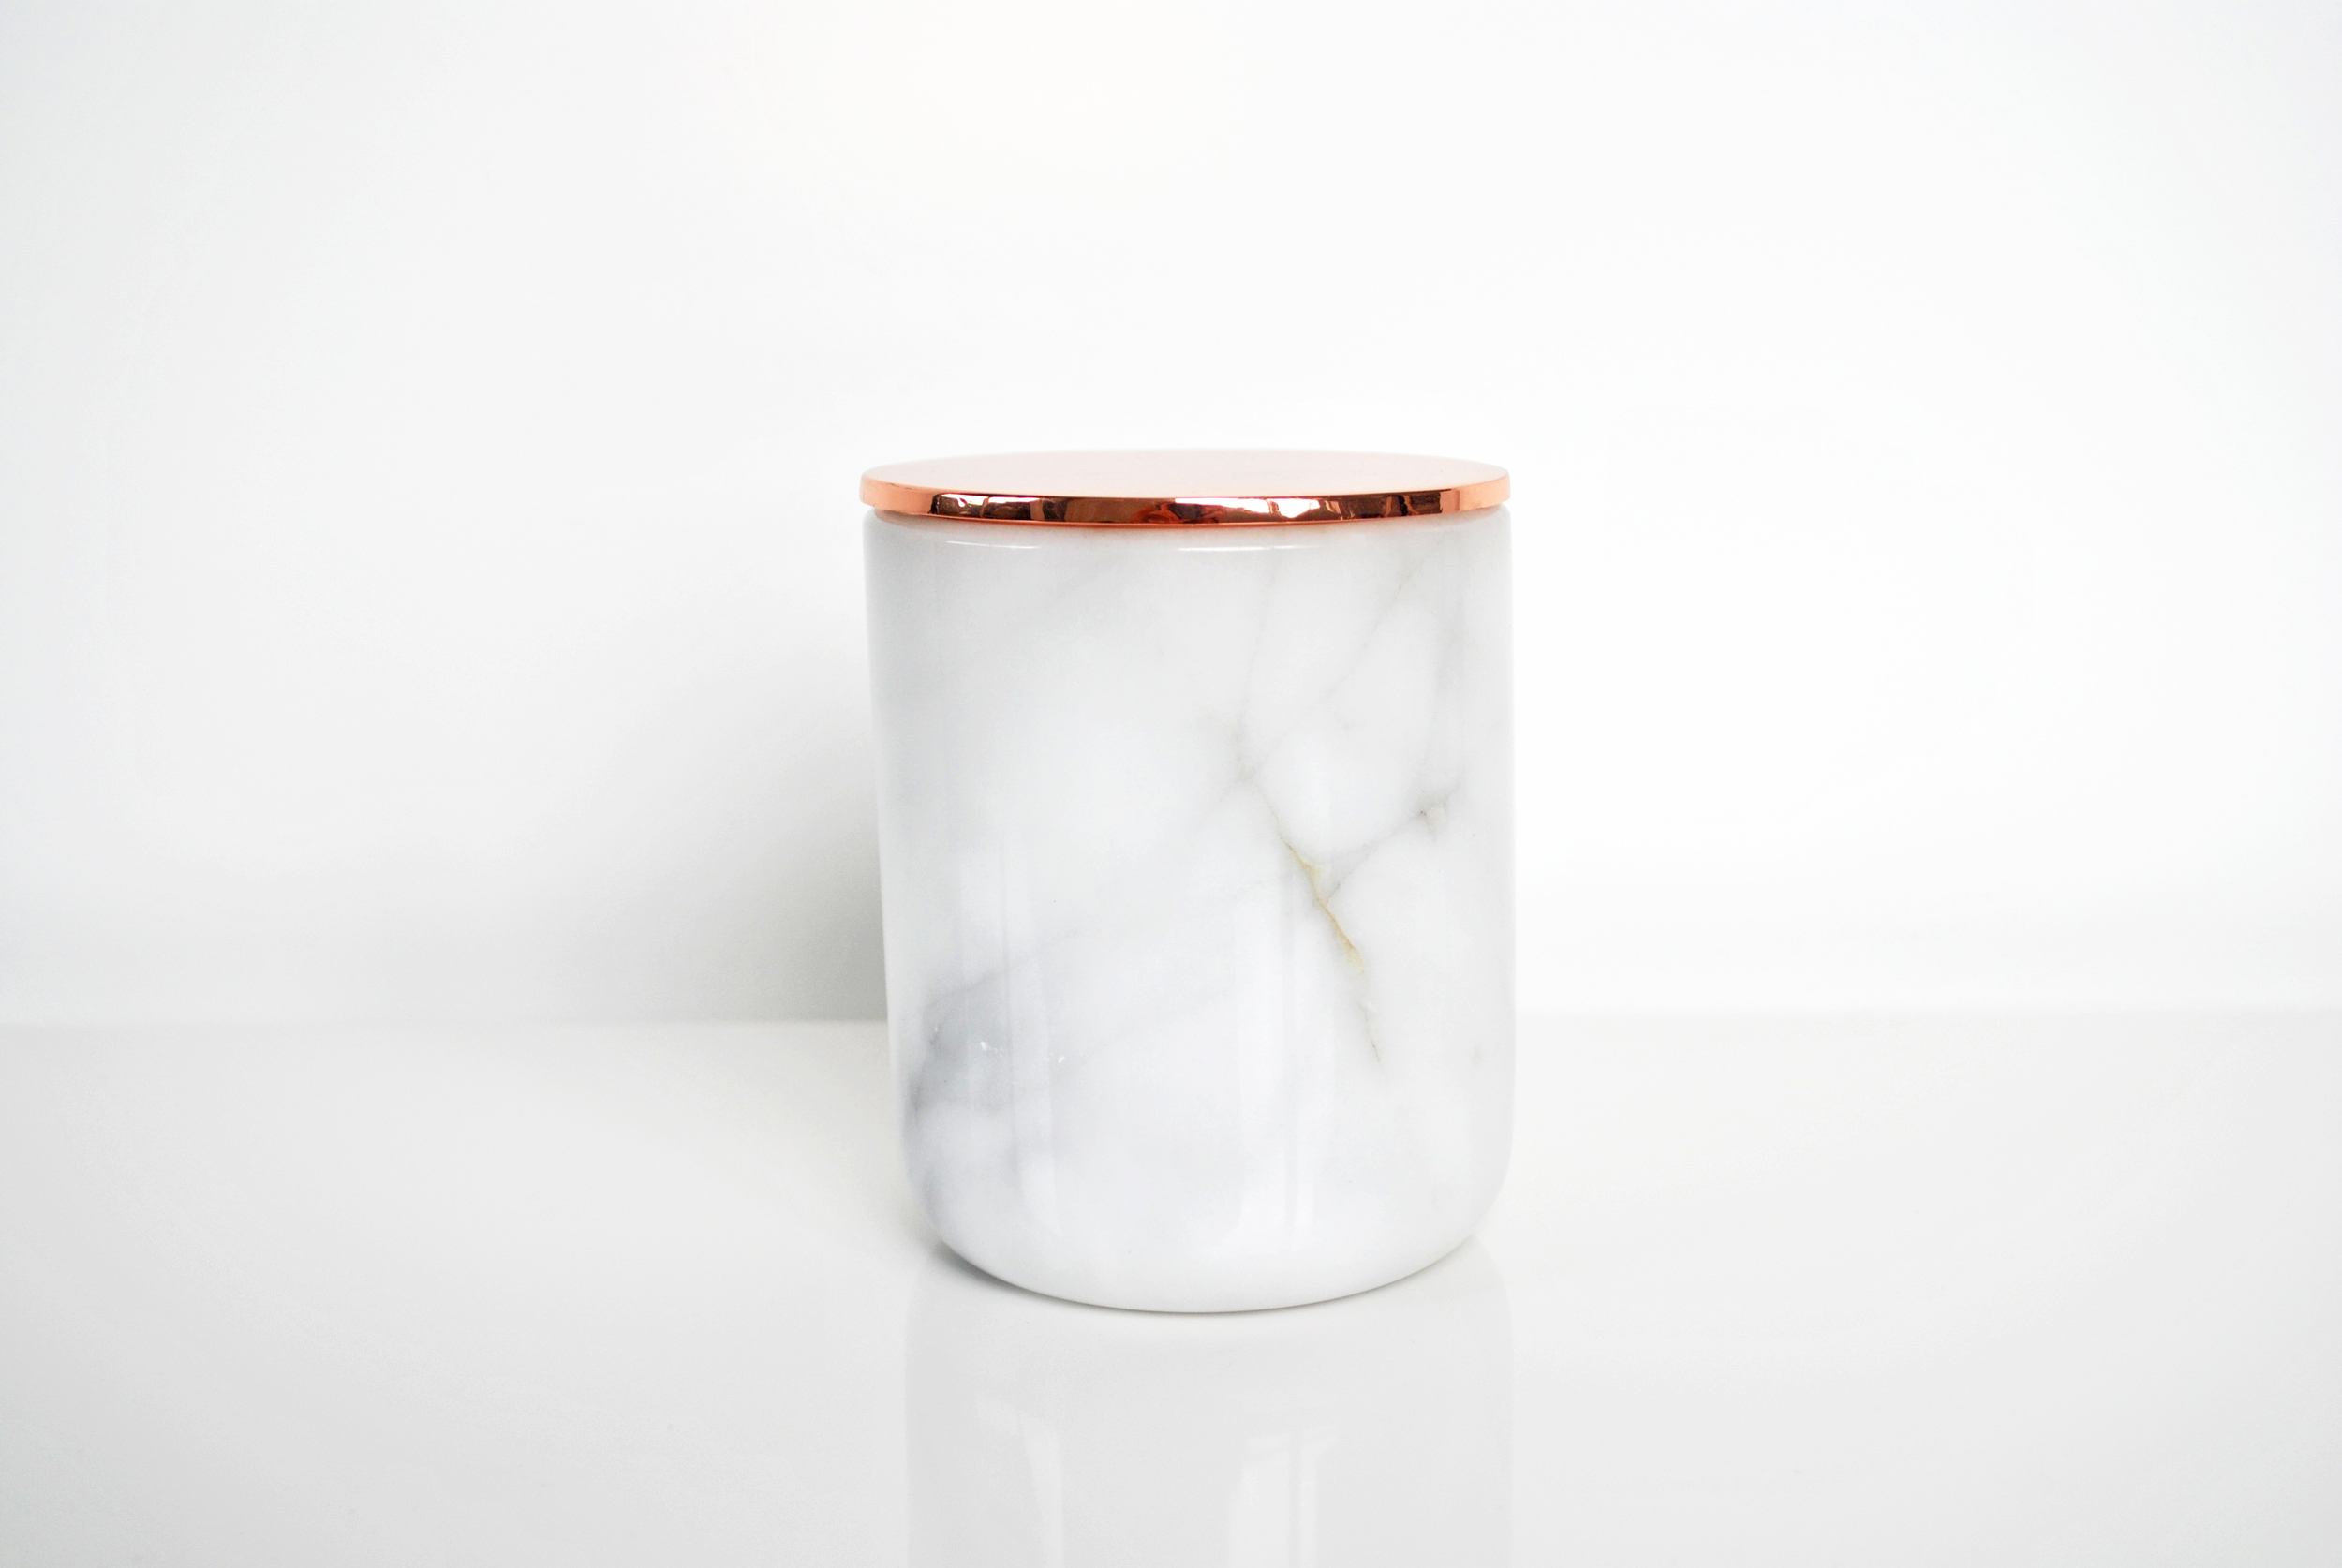 skandidesign marble pot with copper.jpg